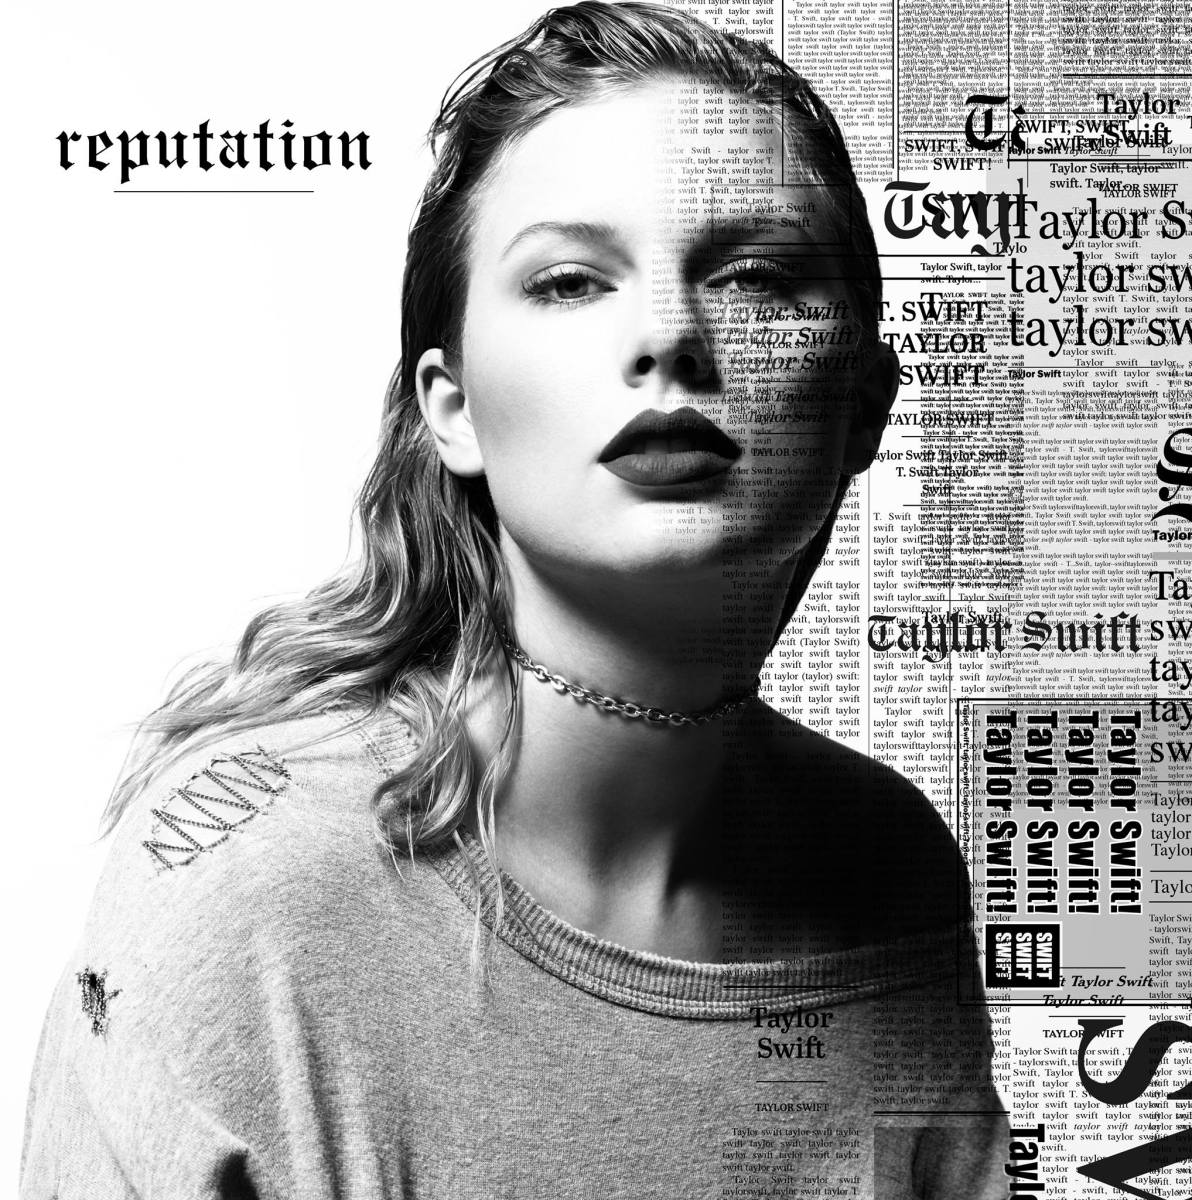 Taylor Swift reveals release date and cover art for new LP 'Reputation'